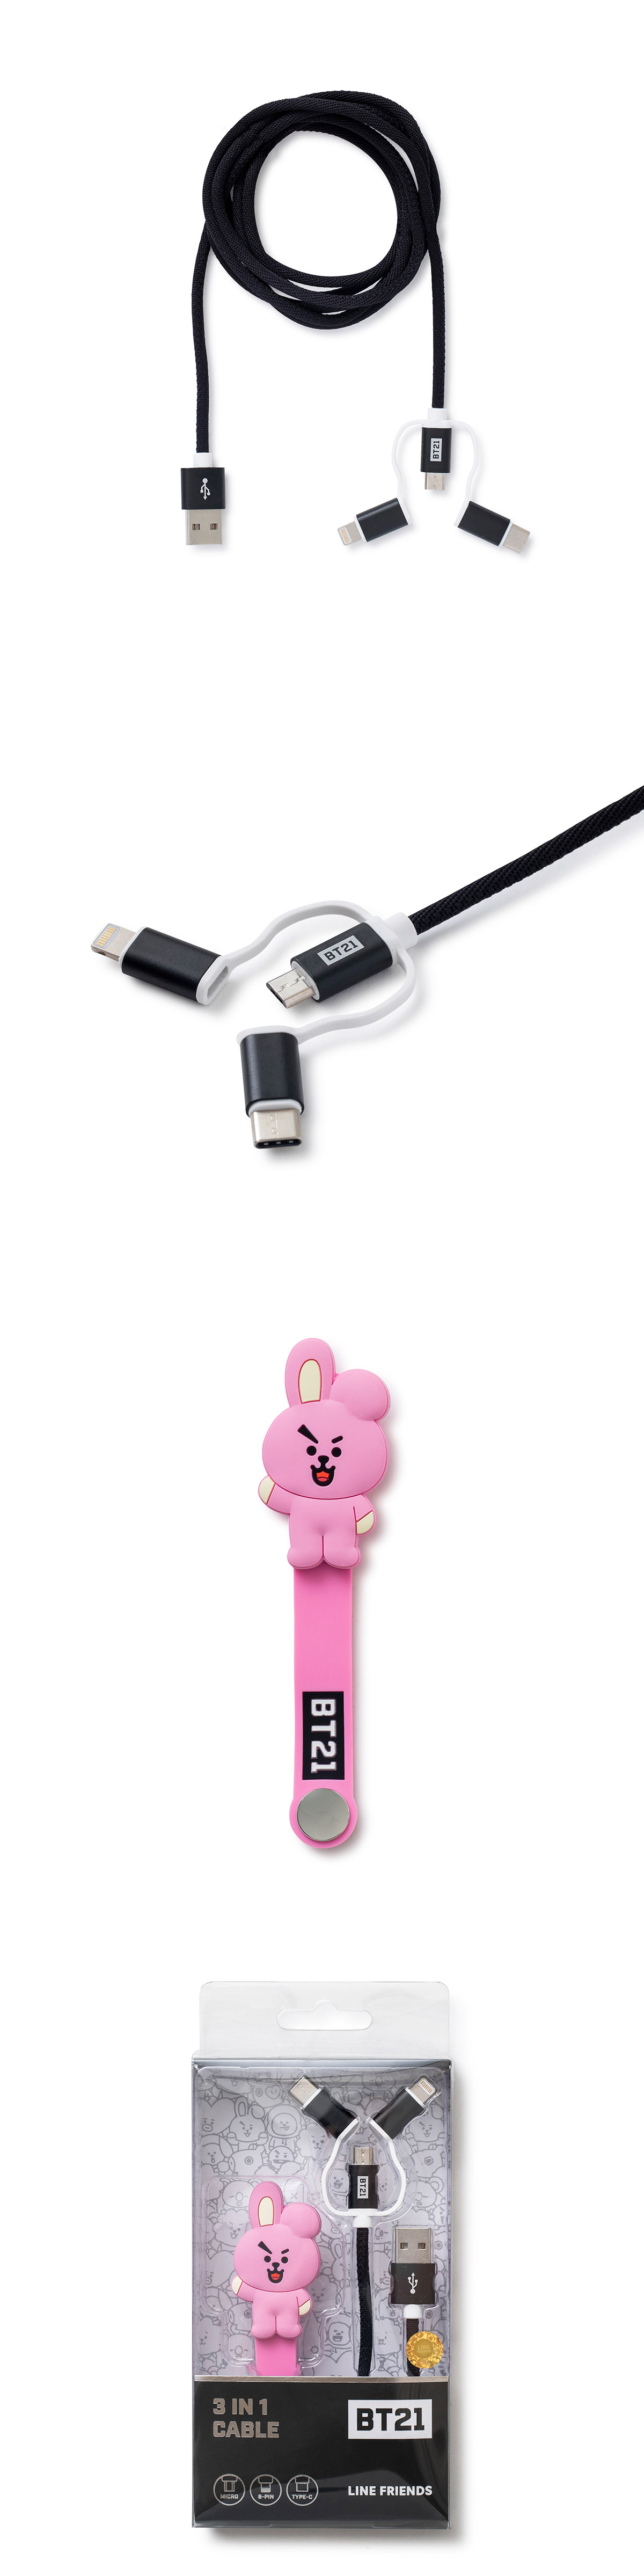 bt21_3in1cable.jpg